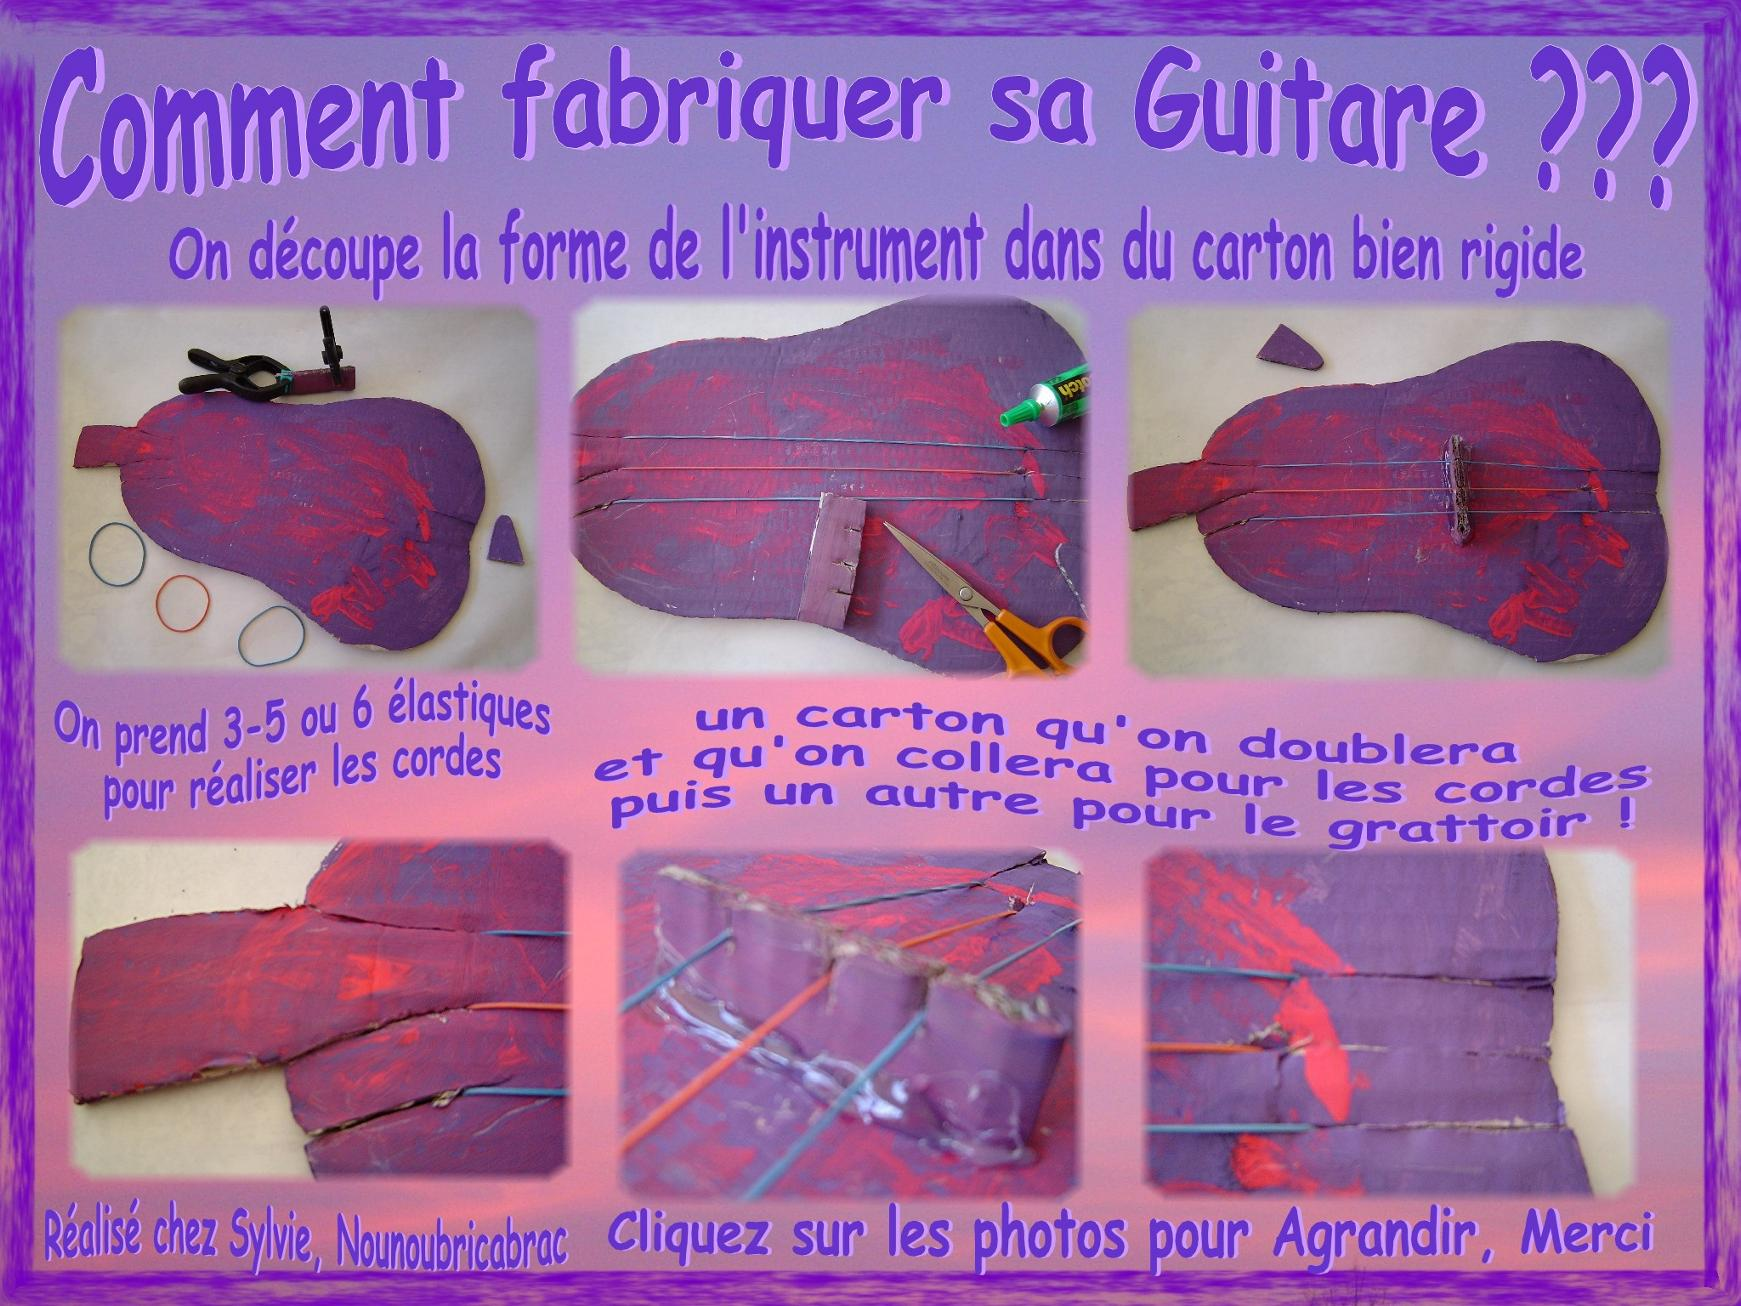 Guitare *1* étapes de fabrication